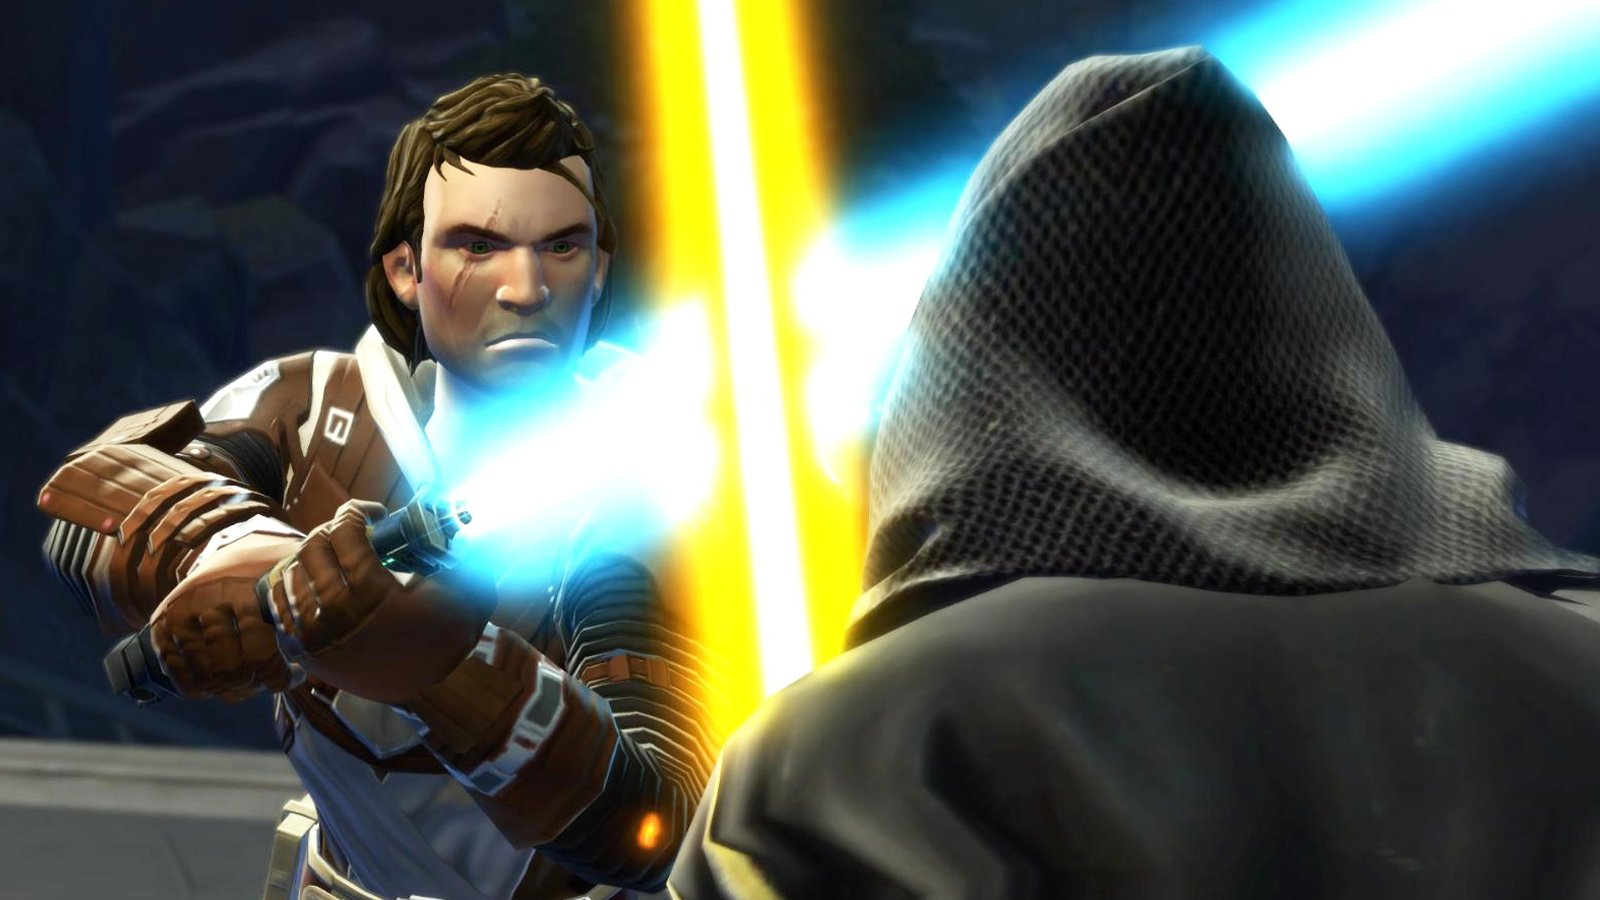 EA took a lot of heat at the time for SWTOR, but Schubert led the F2P transition masterfully